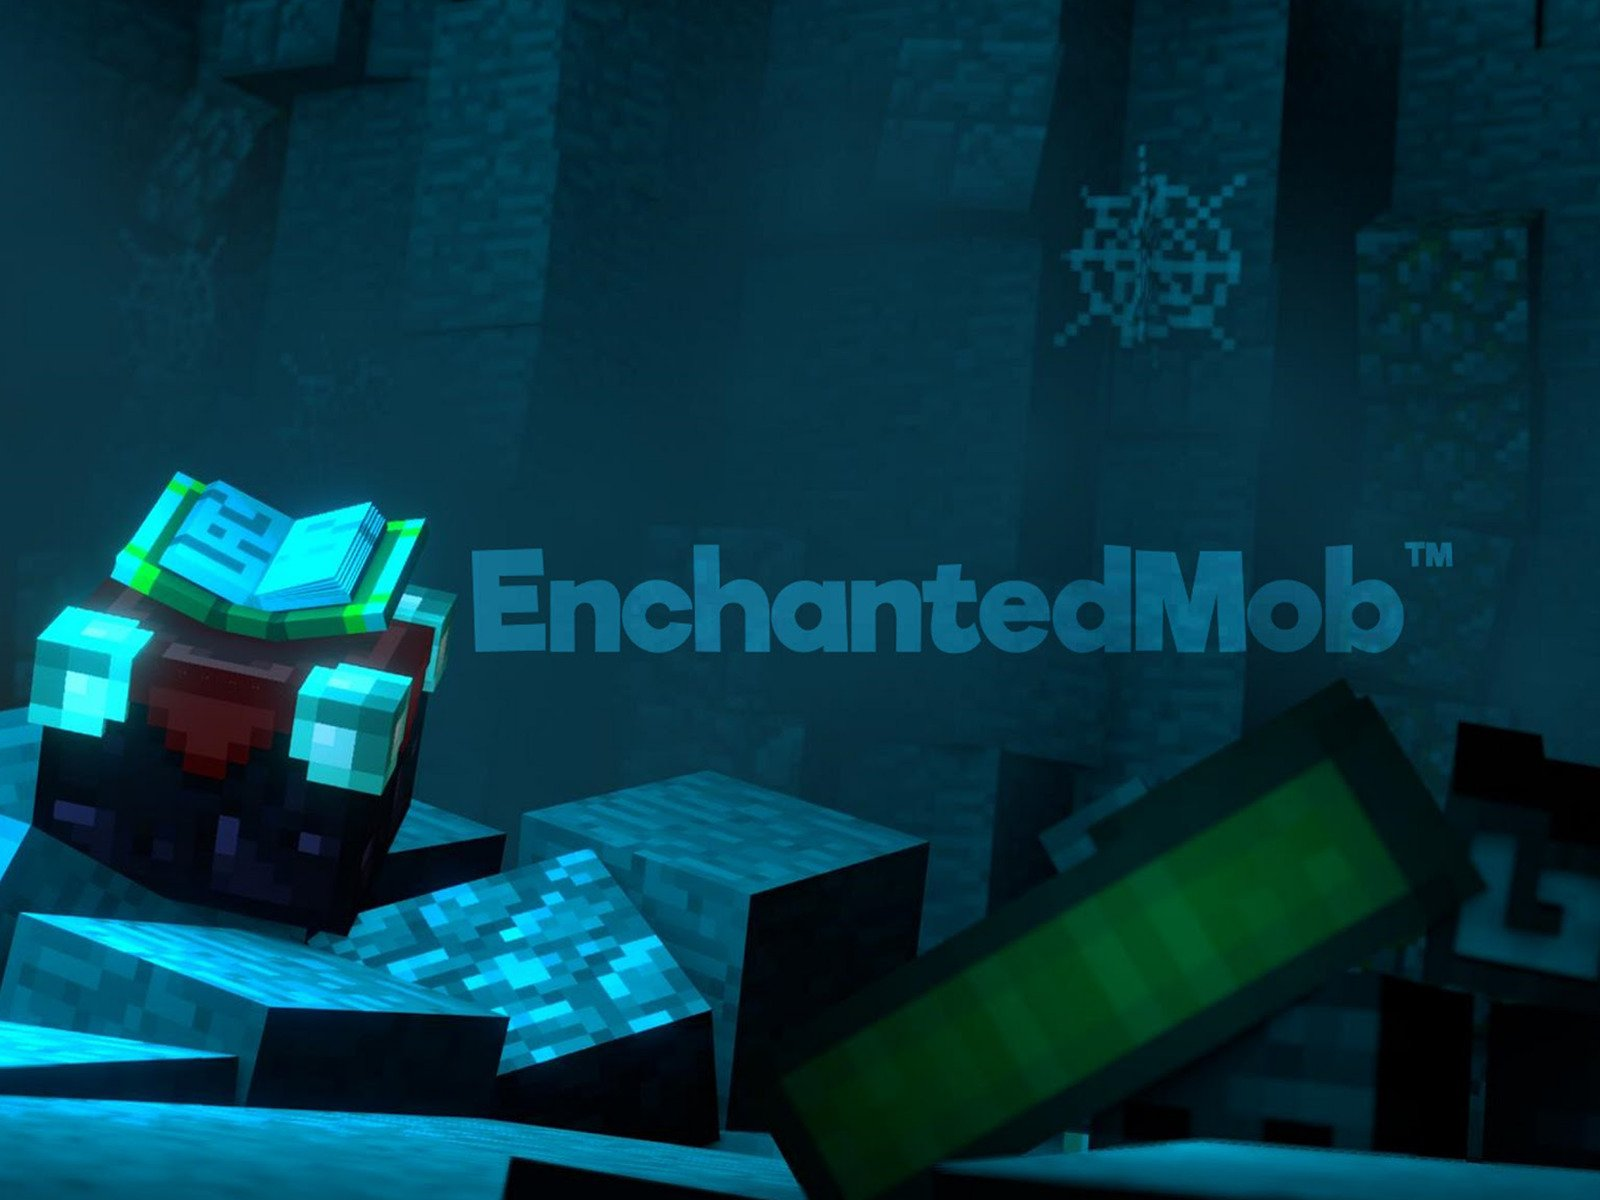 EnchantedMobTM - Season 1